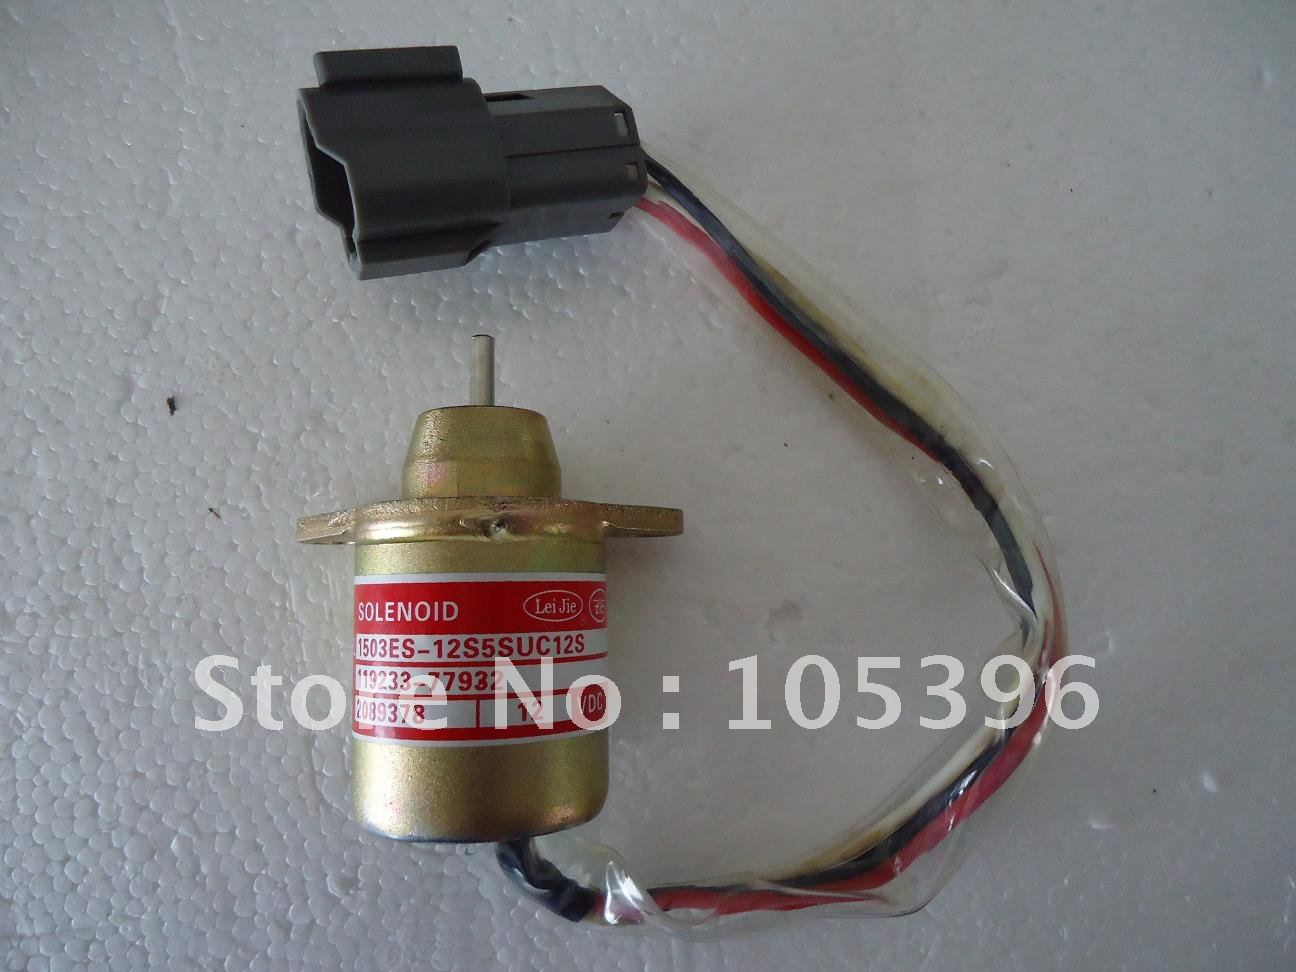 Shut down Solenoid for 119653-77950+fast free shipping by DHL/Fedex/UPS express(5pcs a lot)Shut down Solenoid for 119653-77950+fast free shipping by DHL/Fedex/UPS express(5pcs a lot)